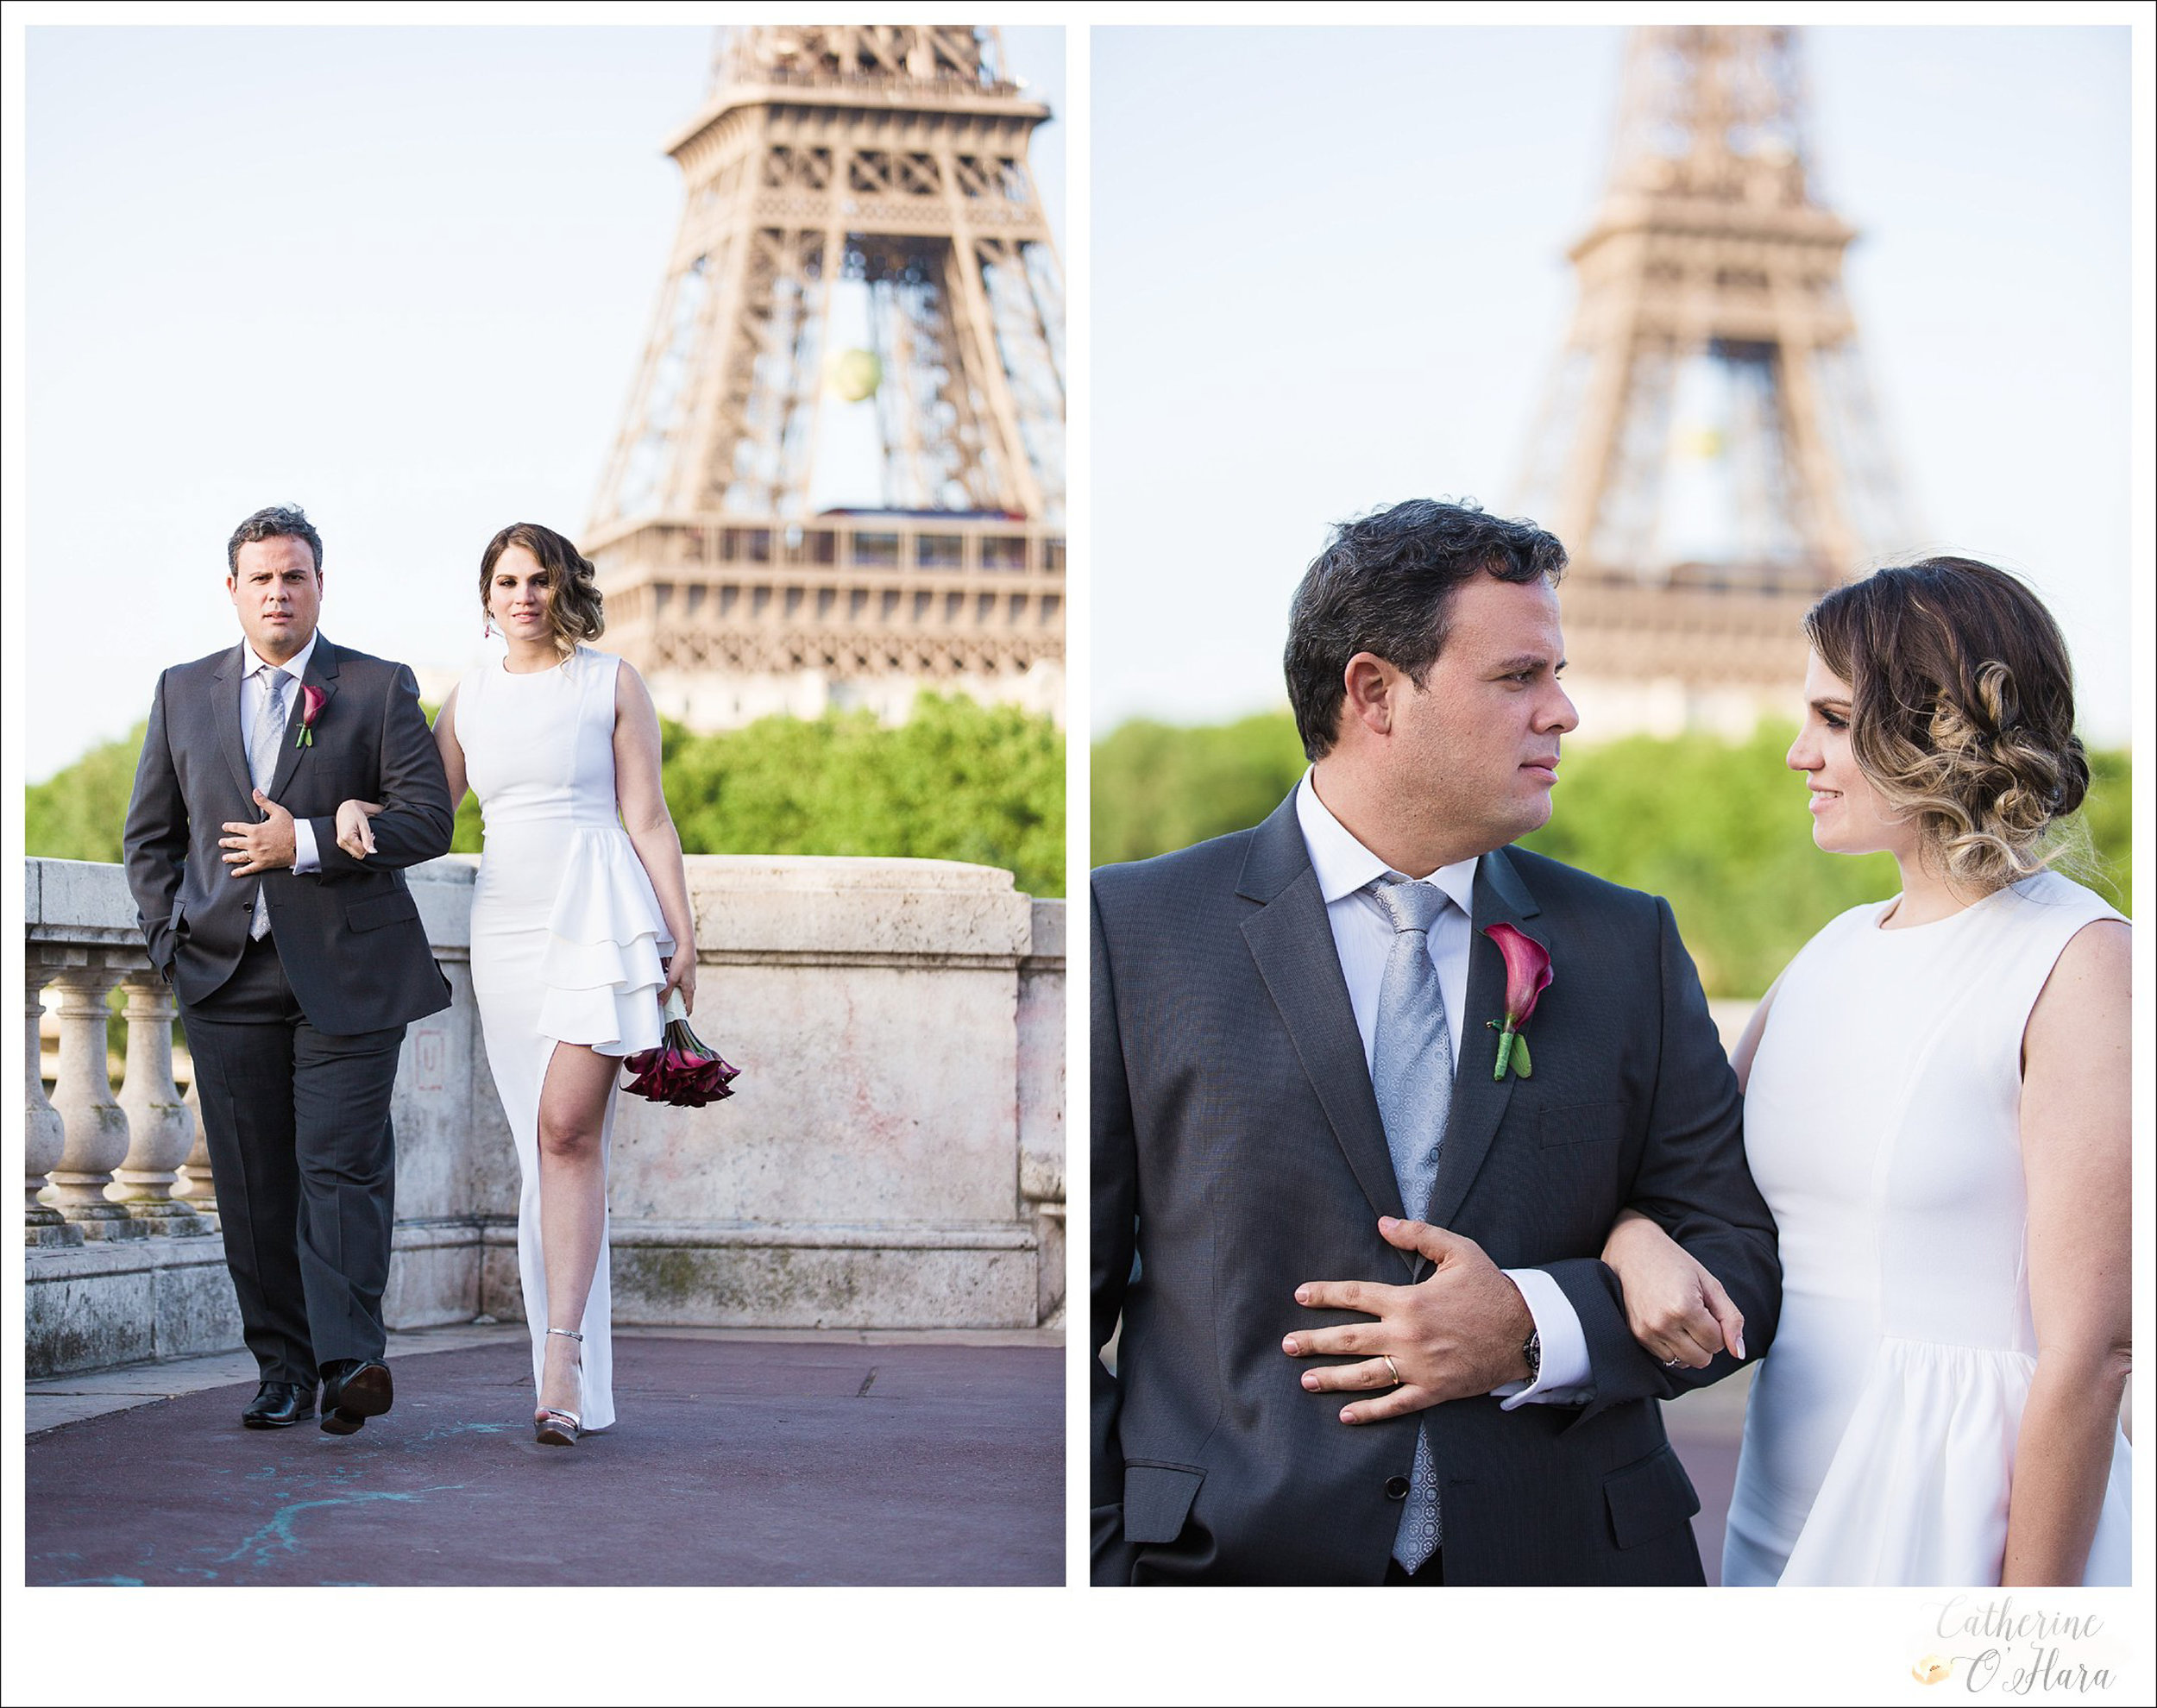 30-paris-france-elopement-photographer.jpg